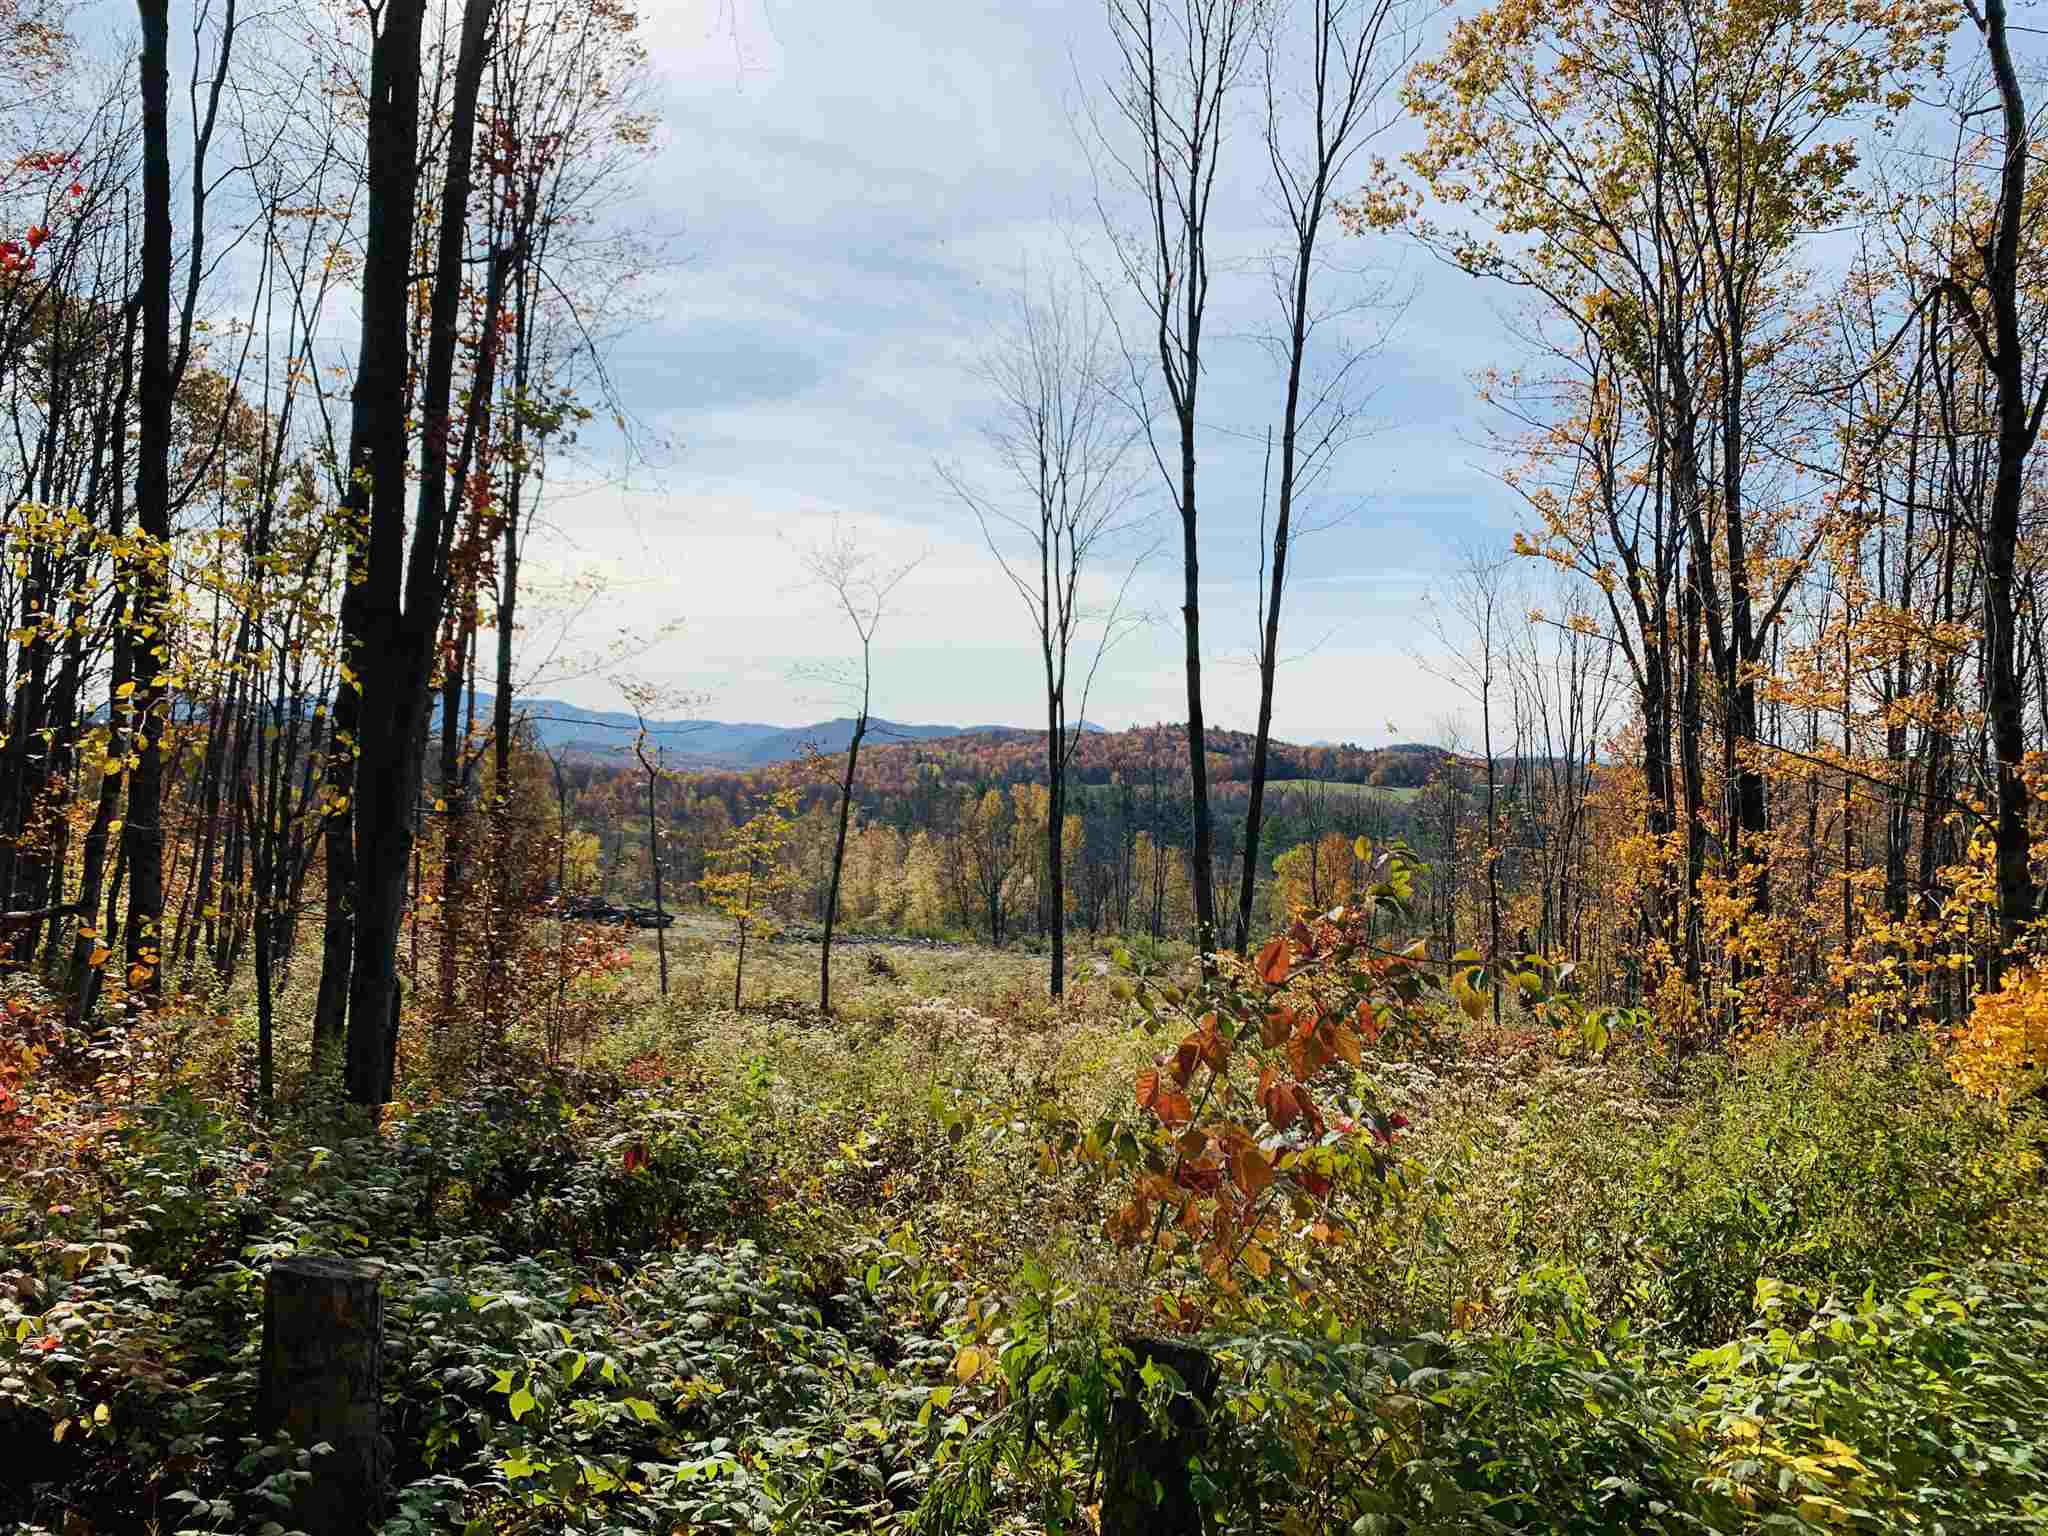 14,615 Maple taps on 300 acres, as reported by Greenleaf Forestry 9/17/19 Field Cruise Analysis. Expand or build your empire. Excellent Southern exposure, well sloped. Logging roads zig zag property for great access.  Mount Mansfield views. Deer yard and Beaver pond. Town allows for one residence to be built off primary access on Repa Road. Westford's Goodrich Trail crosses property. Town lists 300 acres, deed lists 281 acres.